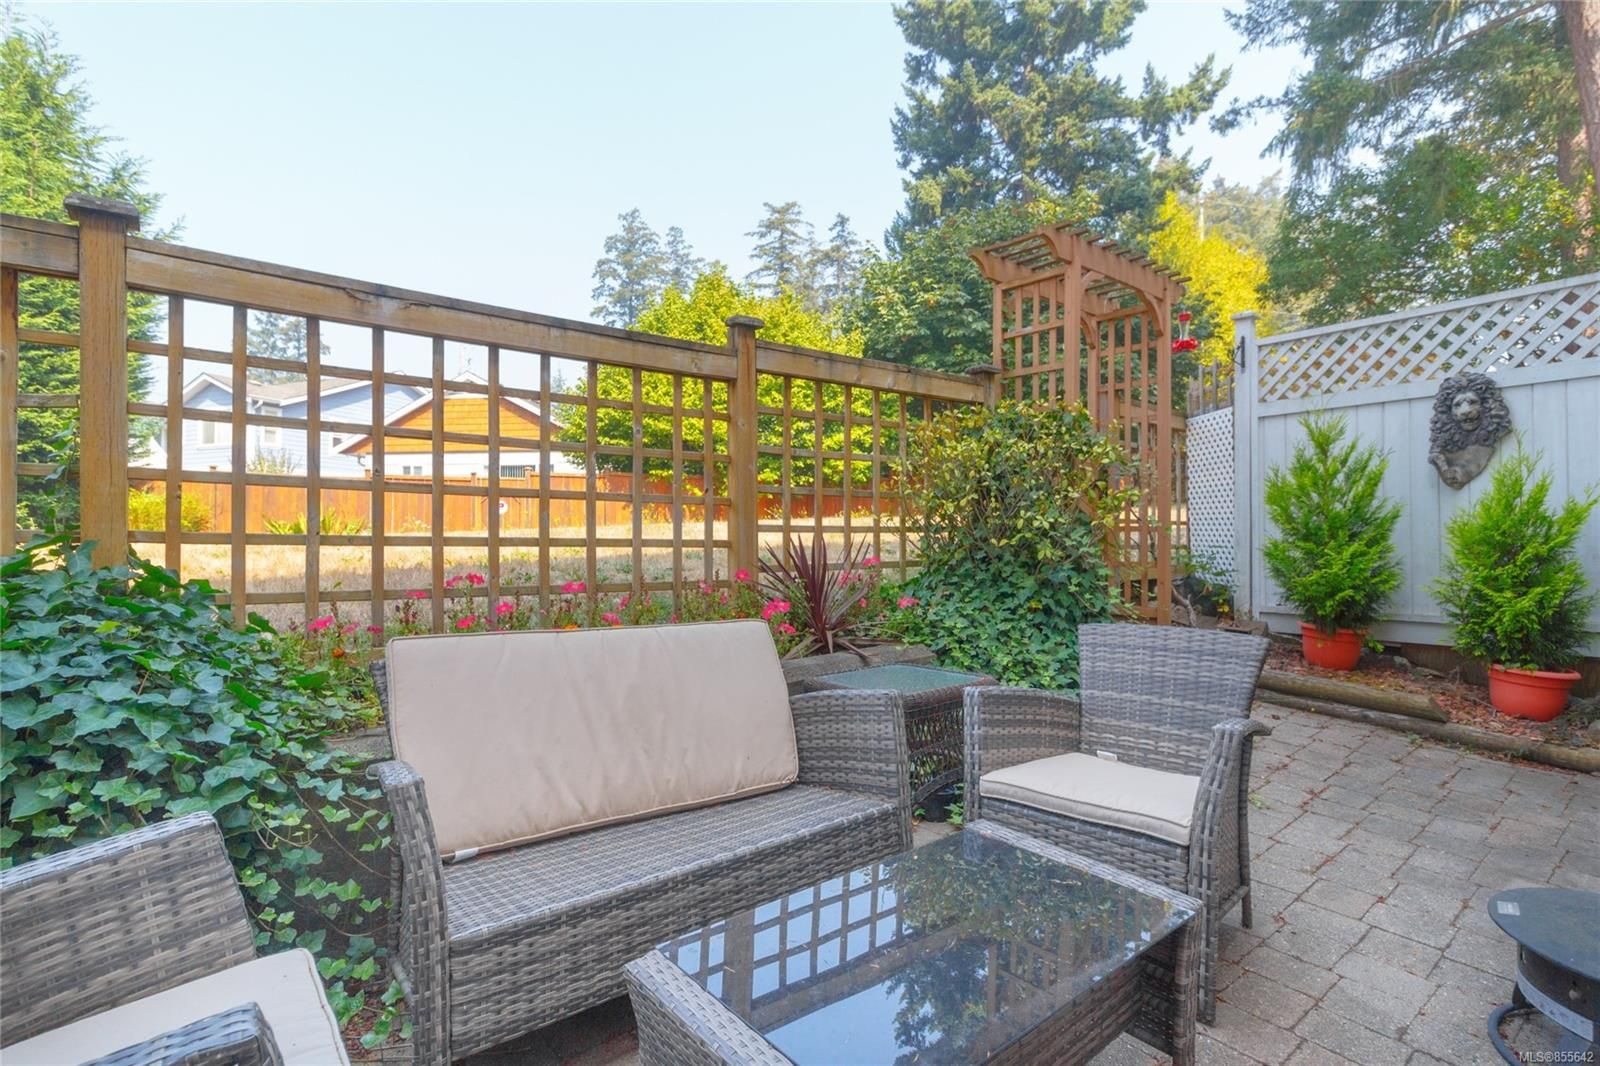 Photo 24: Photos: 52 14 Erskine Lane in : VR Hospital Row/Townhouse for sale (View Royal)  : MLS®# 855642